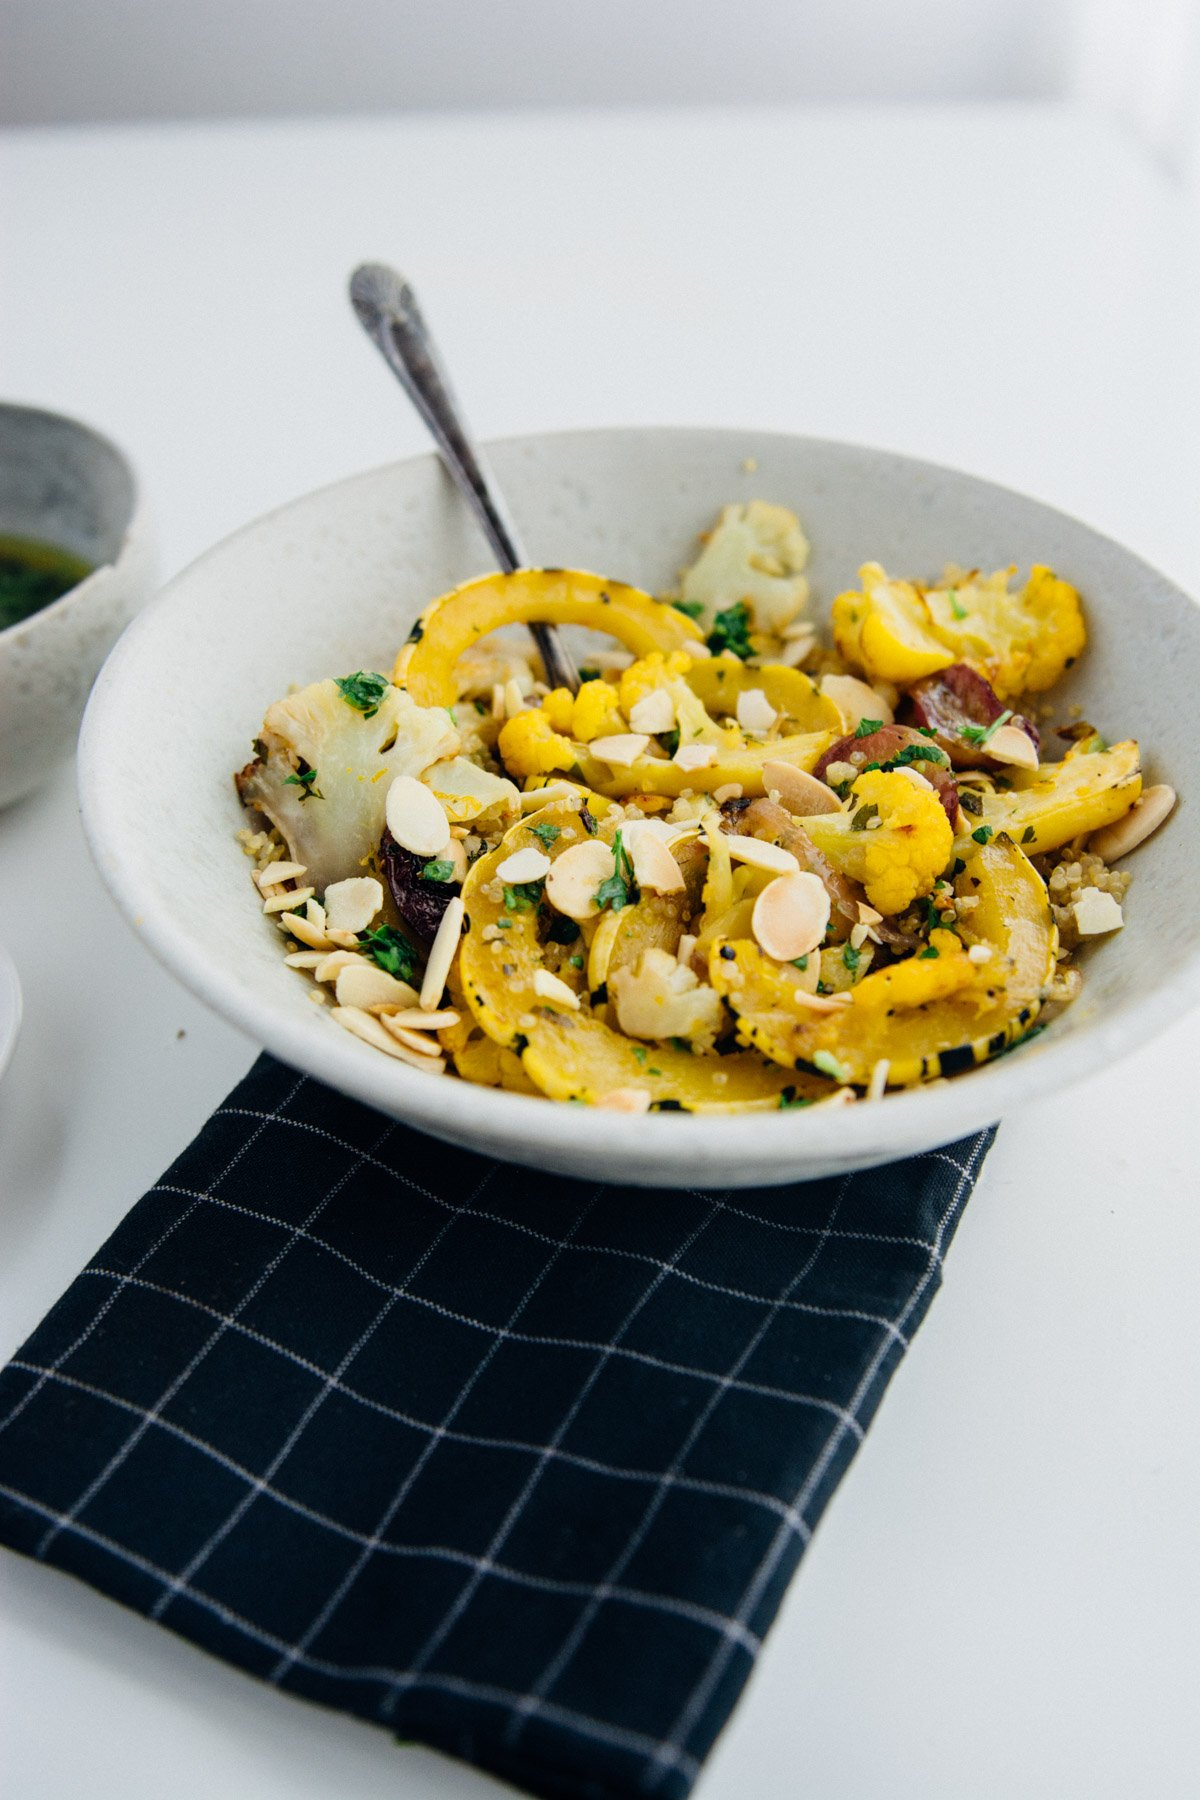 Orange spiced cauliflower and squash bowl | www.scalingbackblog.com